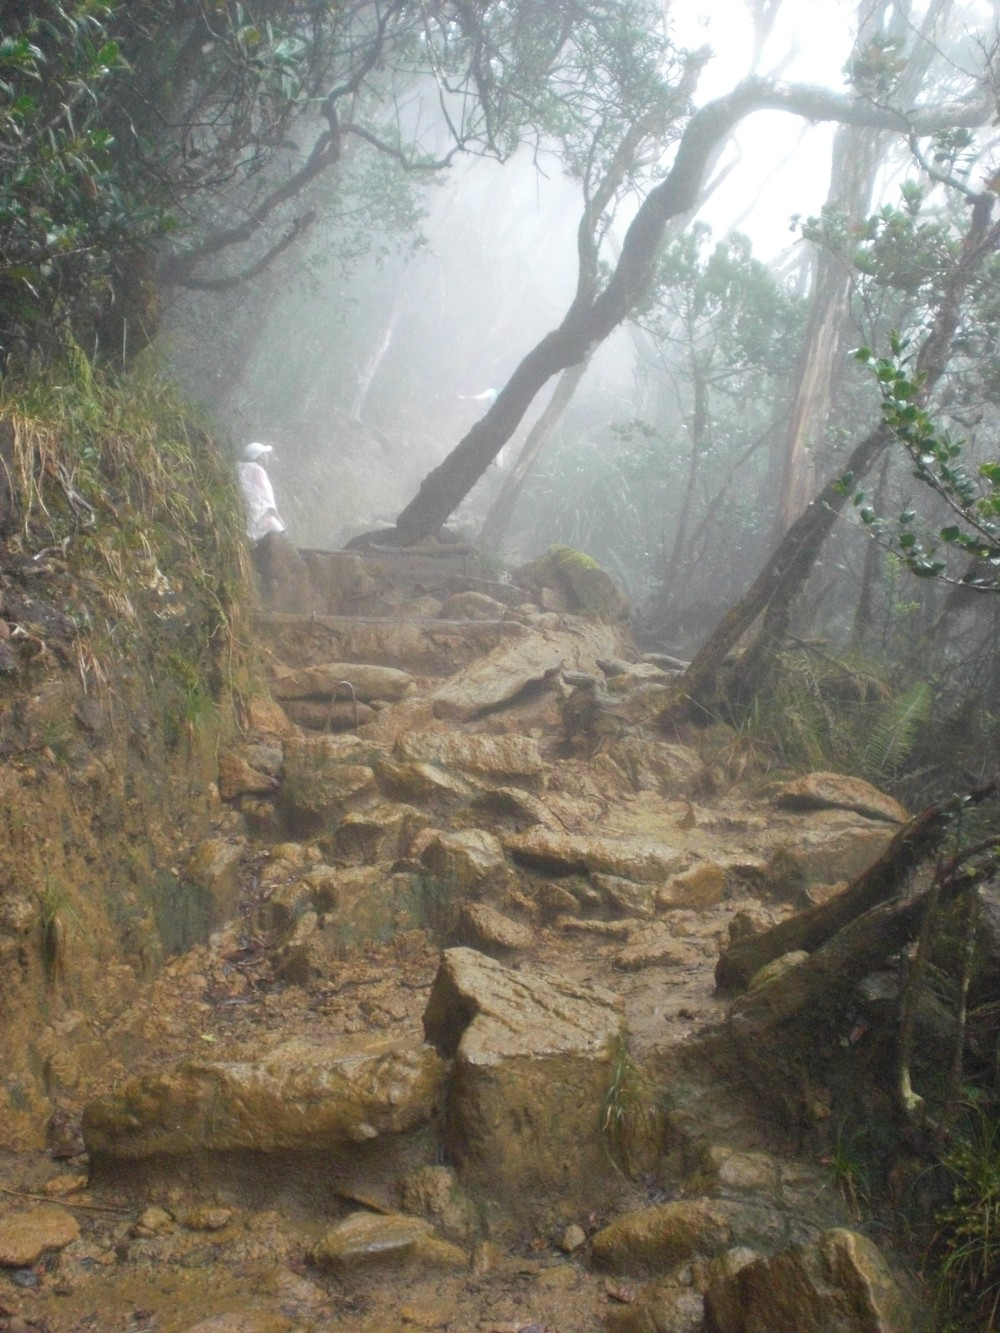 The rocky climbing path of Mt. Kinabalu requires hiking boots